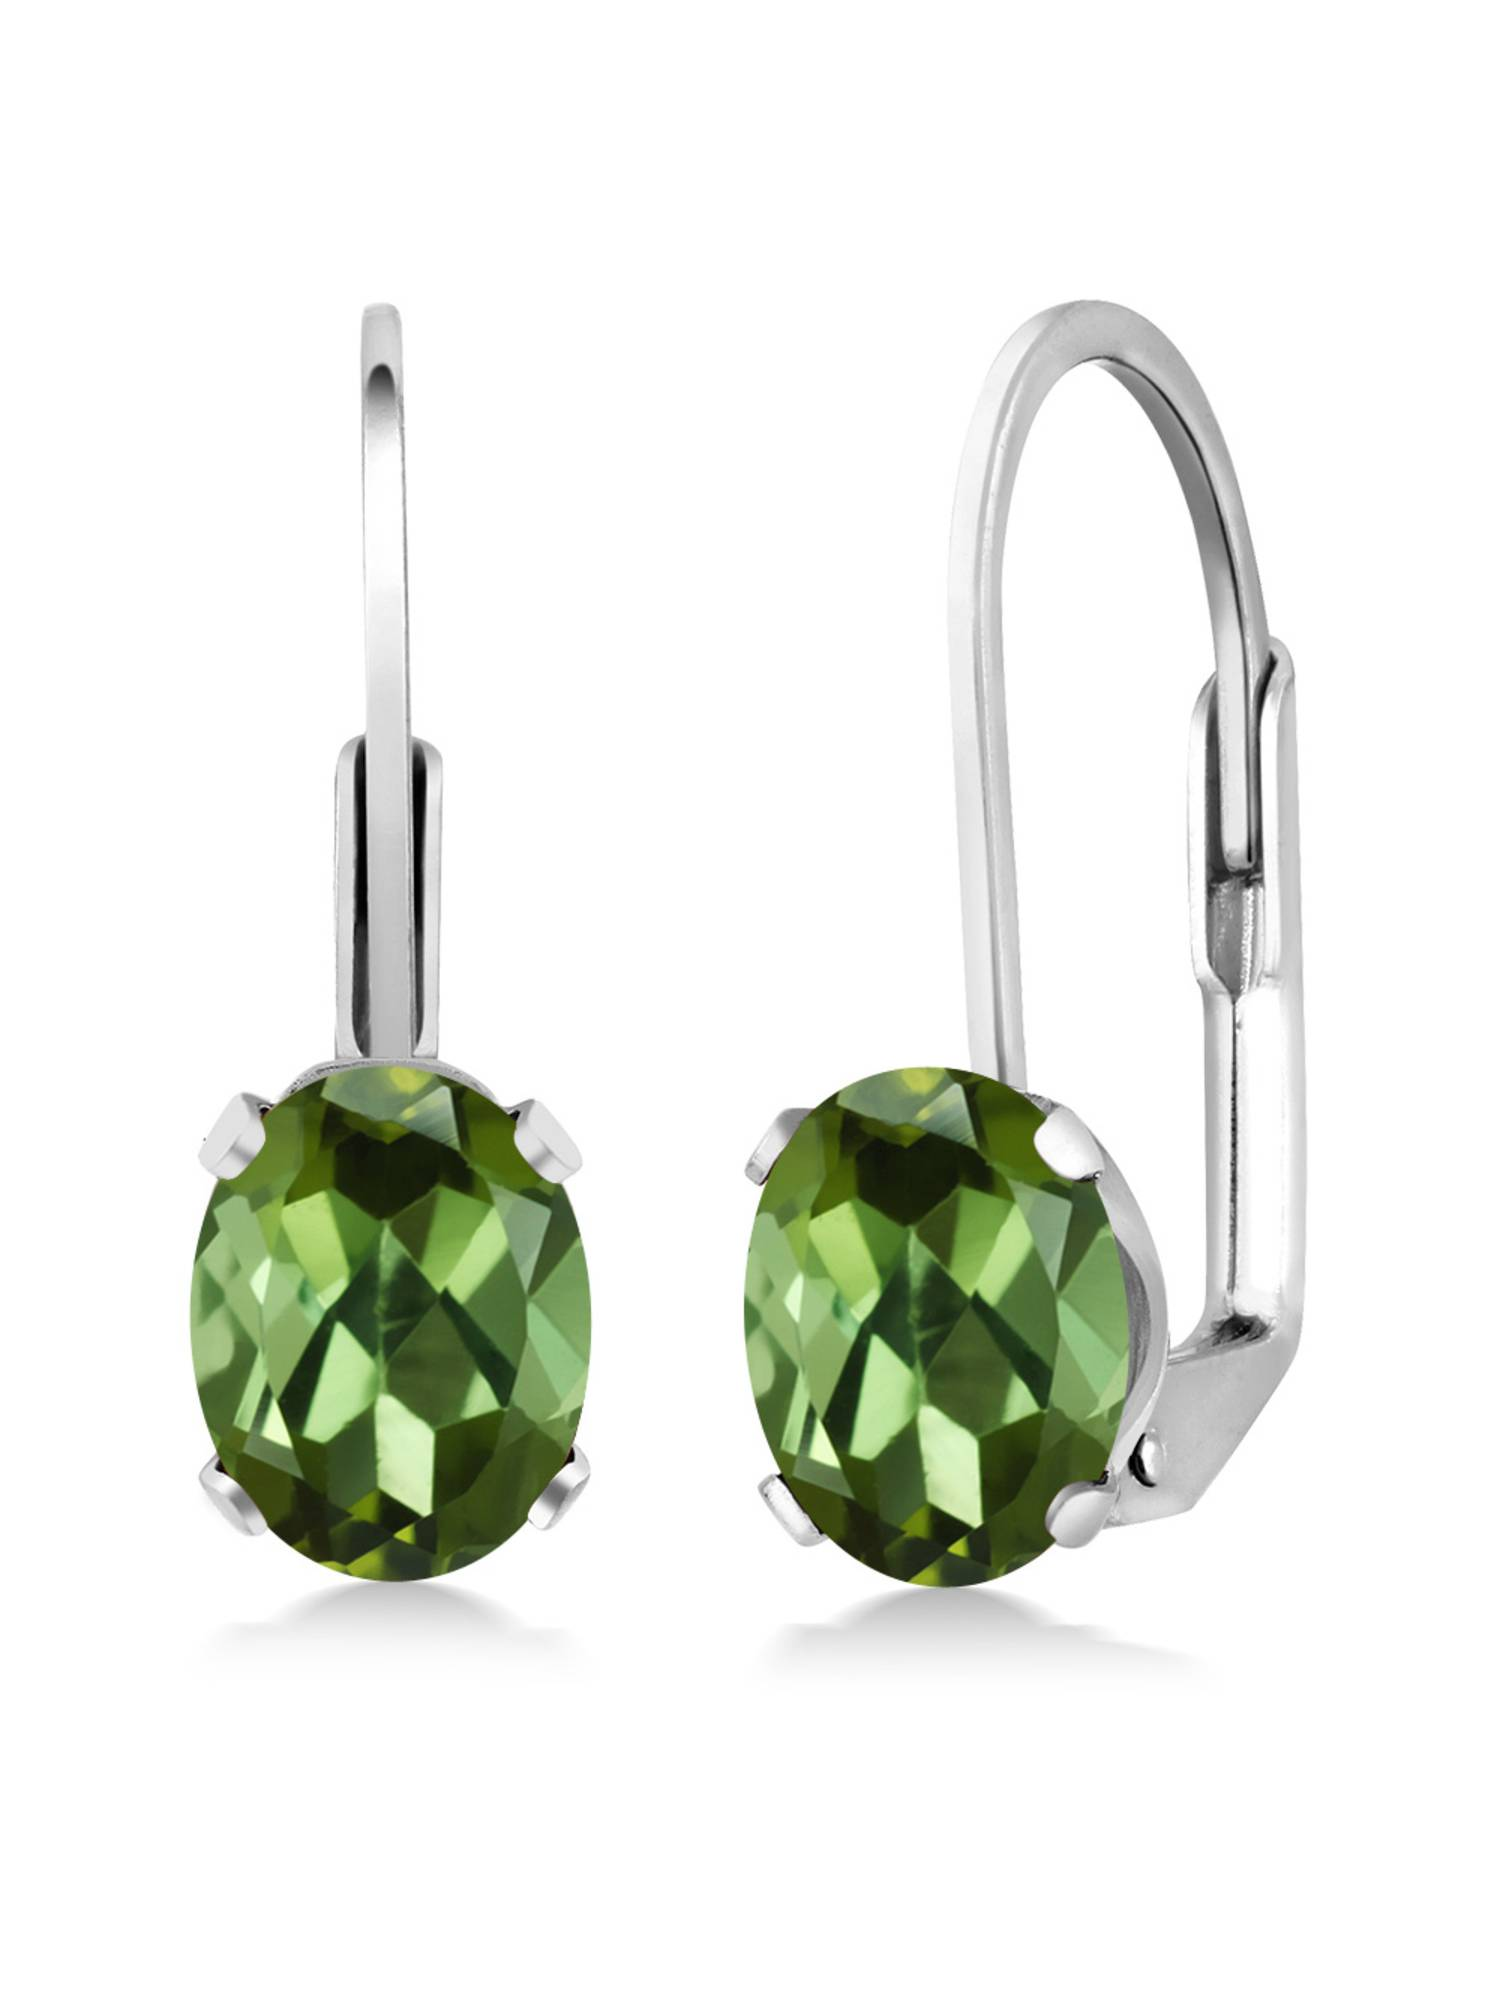 1.70 Ct Oval Green Tourmaline 925 Sterling Silver Leverback leverback earrings by